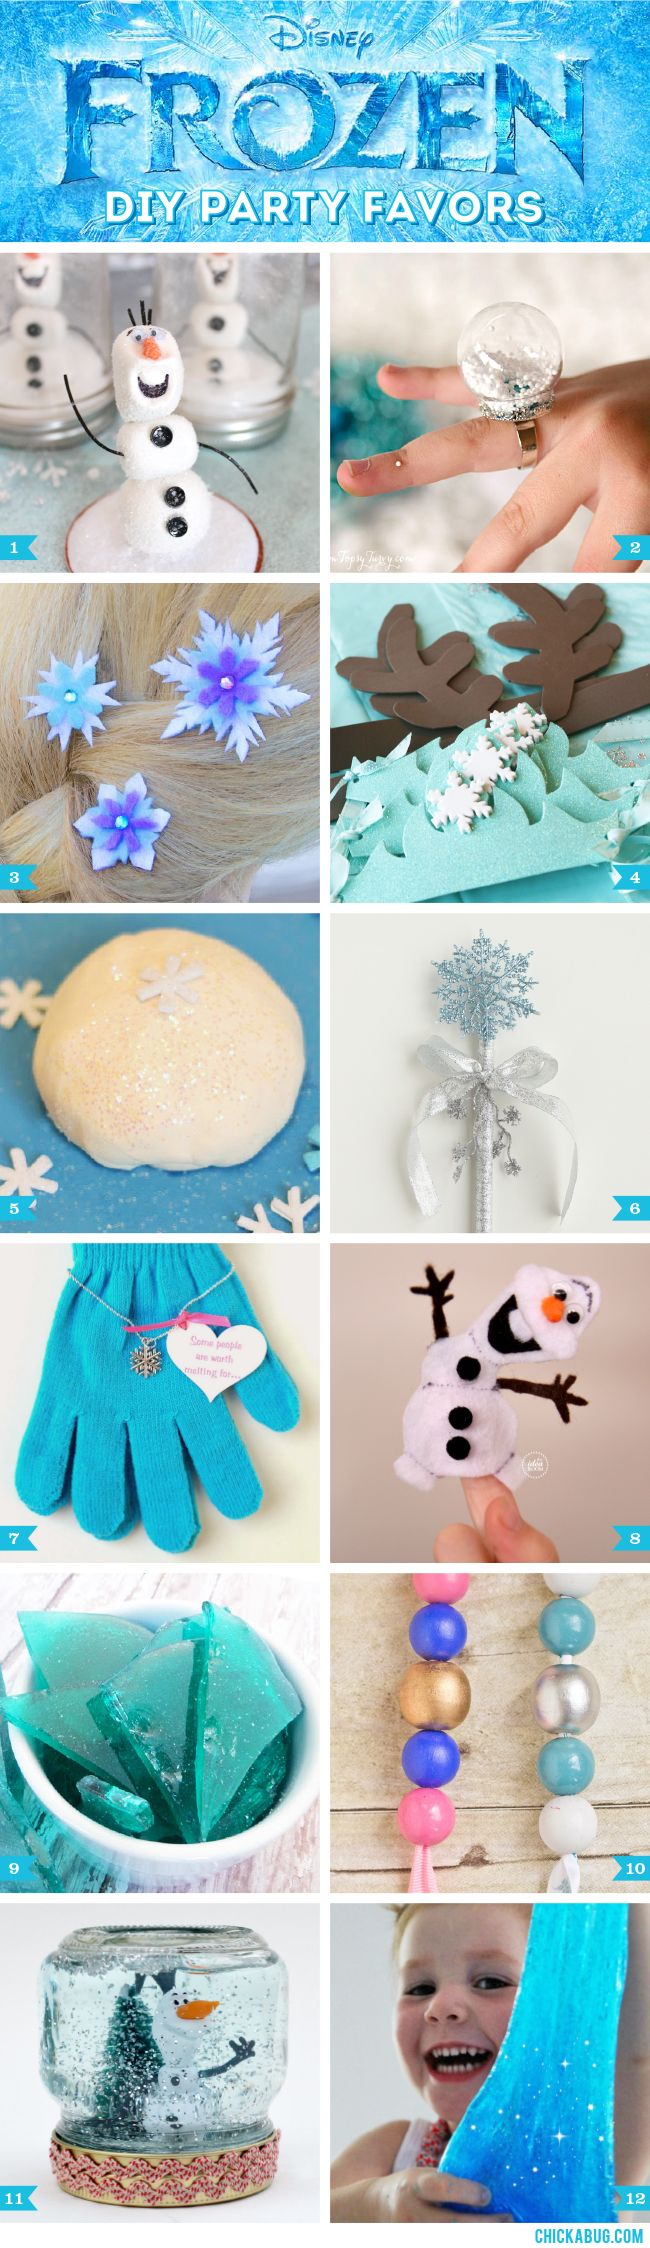 If you're throwing a Frozen party, there's certainly no shortage of official Disney merchandise out there to fill your favor bags! But DIY gifts are super thoughtful, often less expensive, and let's face it… some of uslovean excuse to get craftin'. ; ) Here are 12 funFrozen party favor ideas, with gifts for bothgirlsandboys! 1. Olaf mason jar (water-free) snow globes by My Sister's Suitcase 2. Frozen snow globe rings …